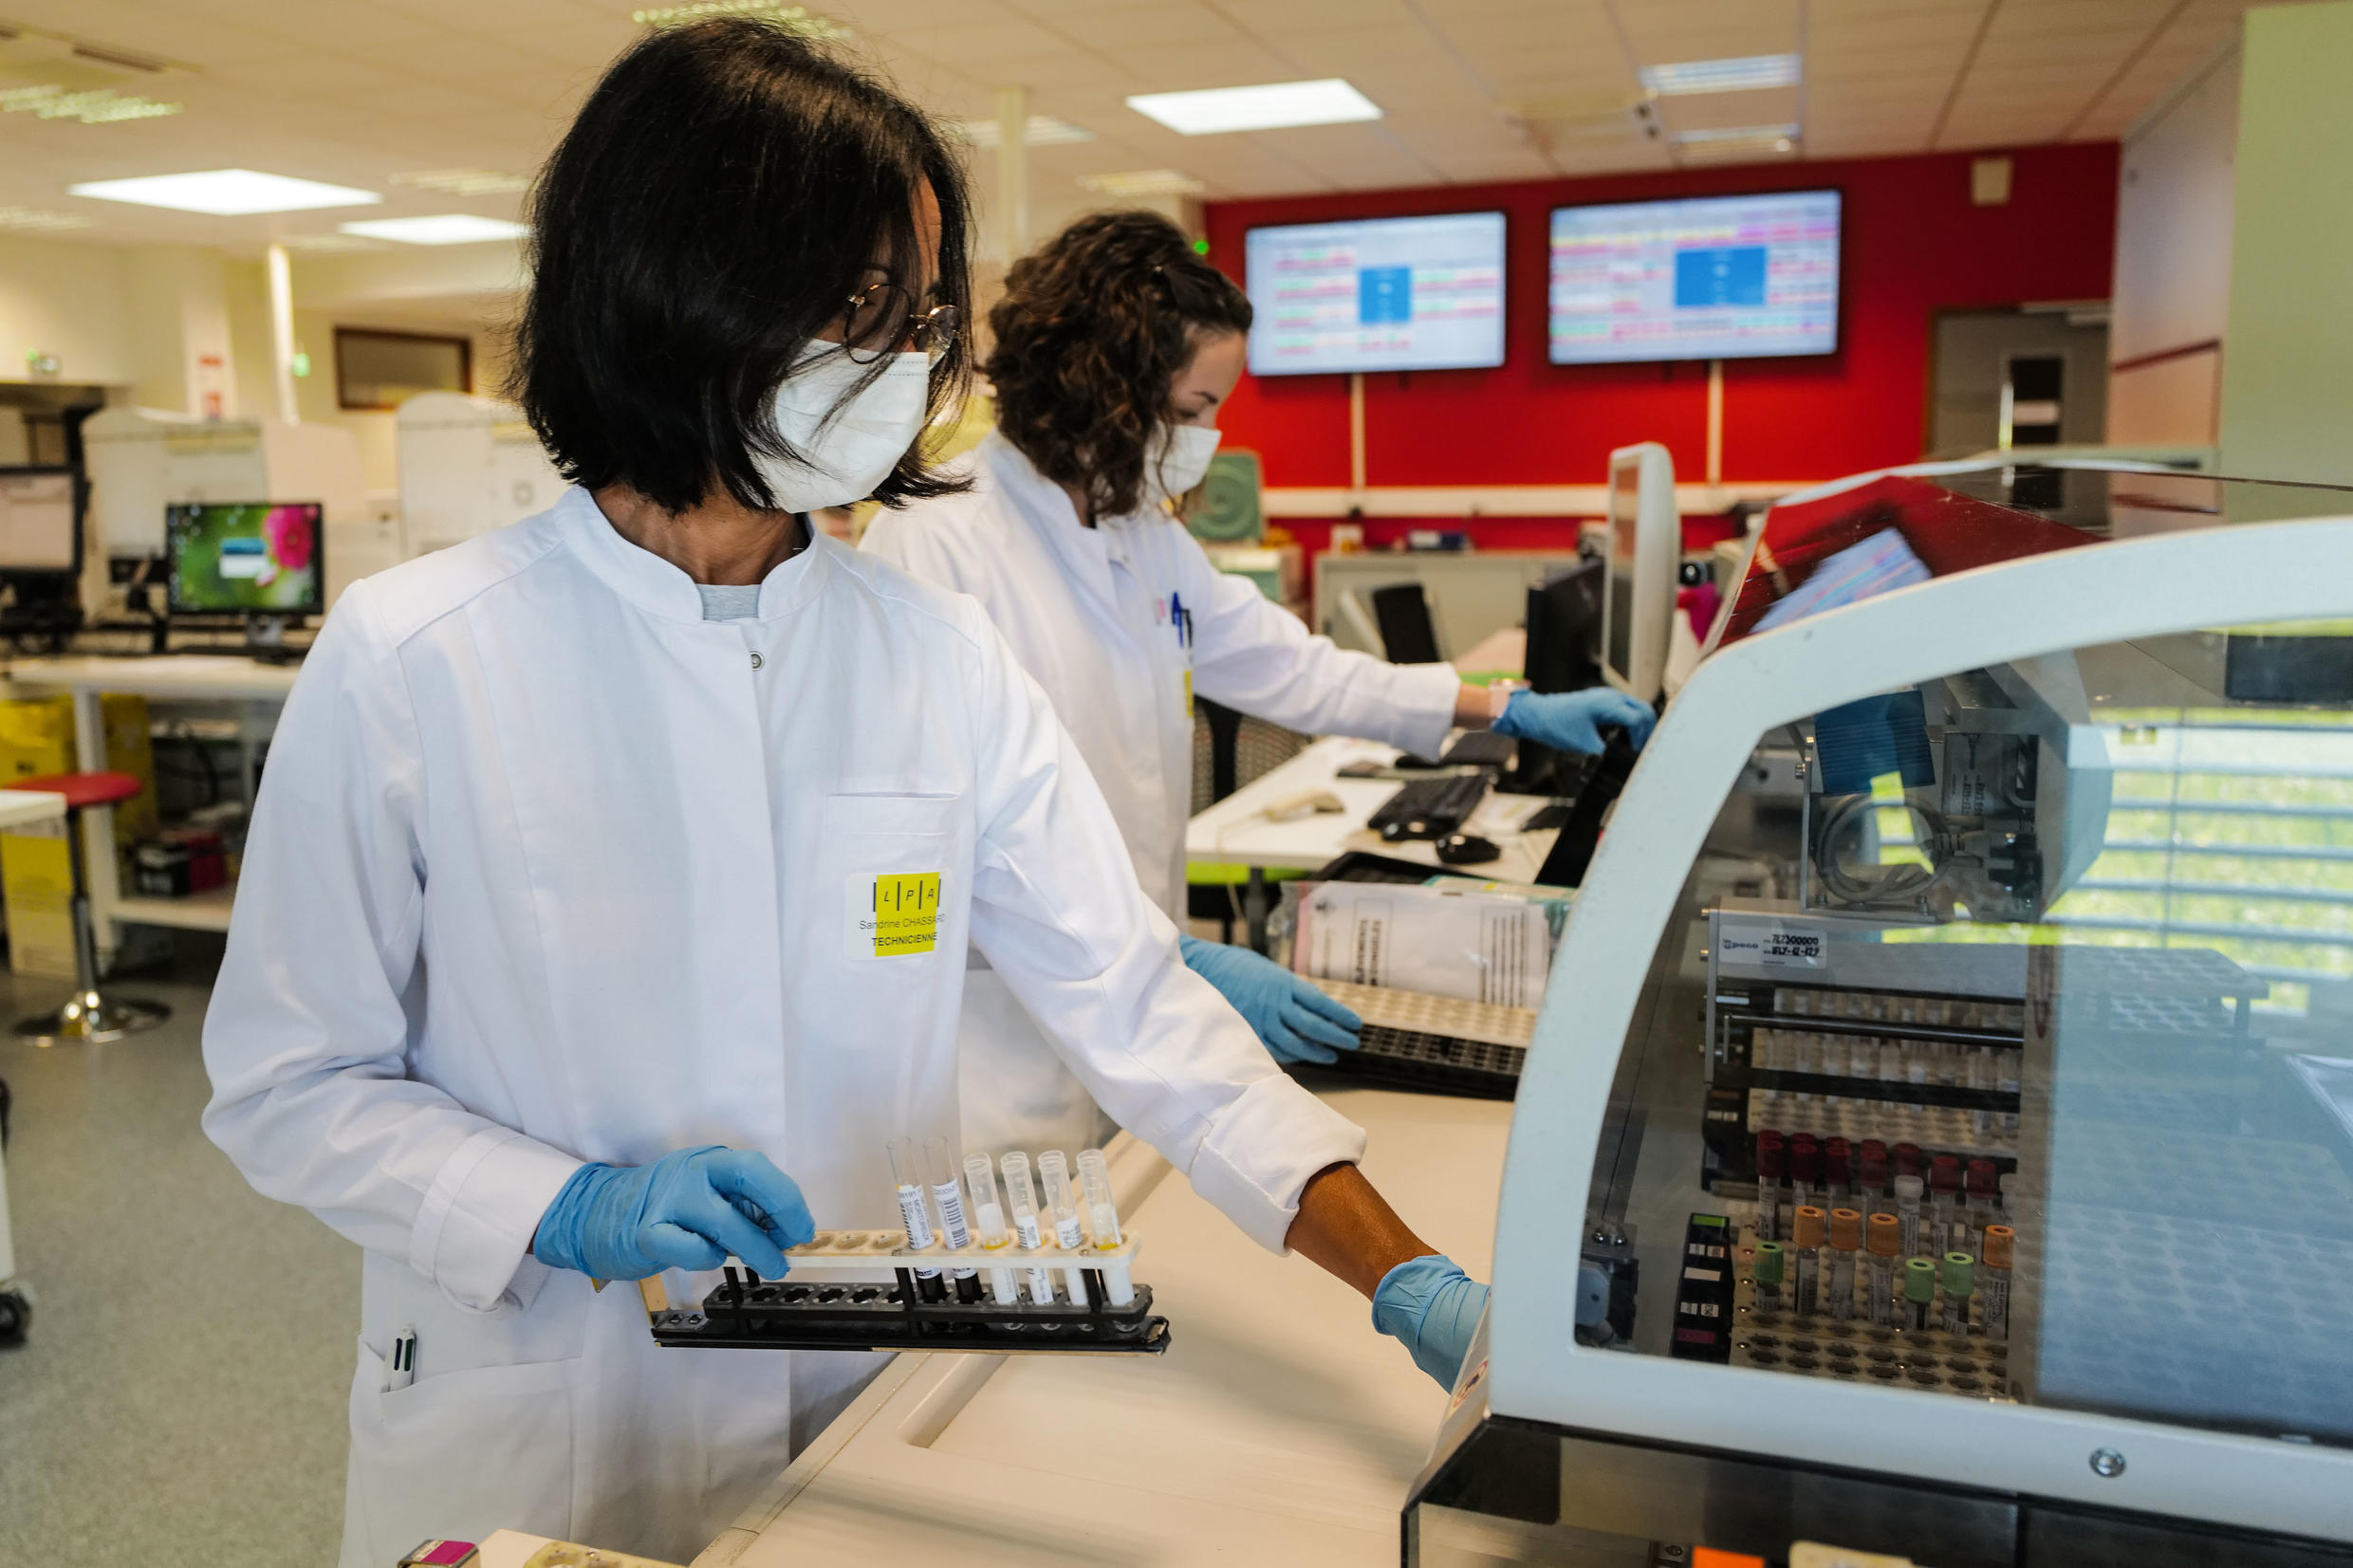 Technicians handling blood samples for Covid-19 tests at the LPA analysis laboratory in Besançon, France on May 29 2020.